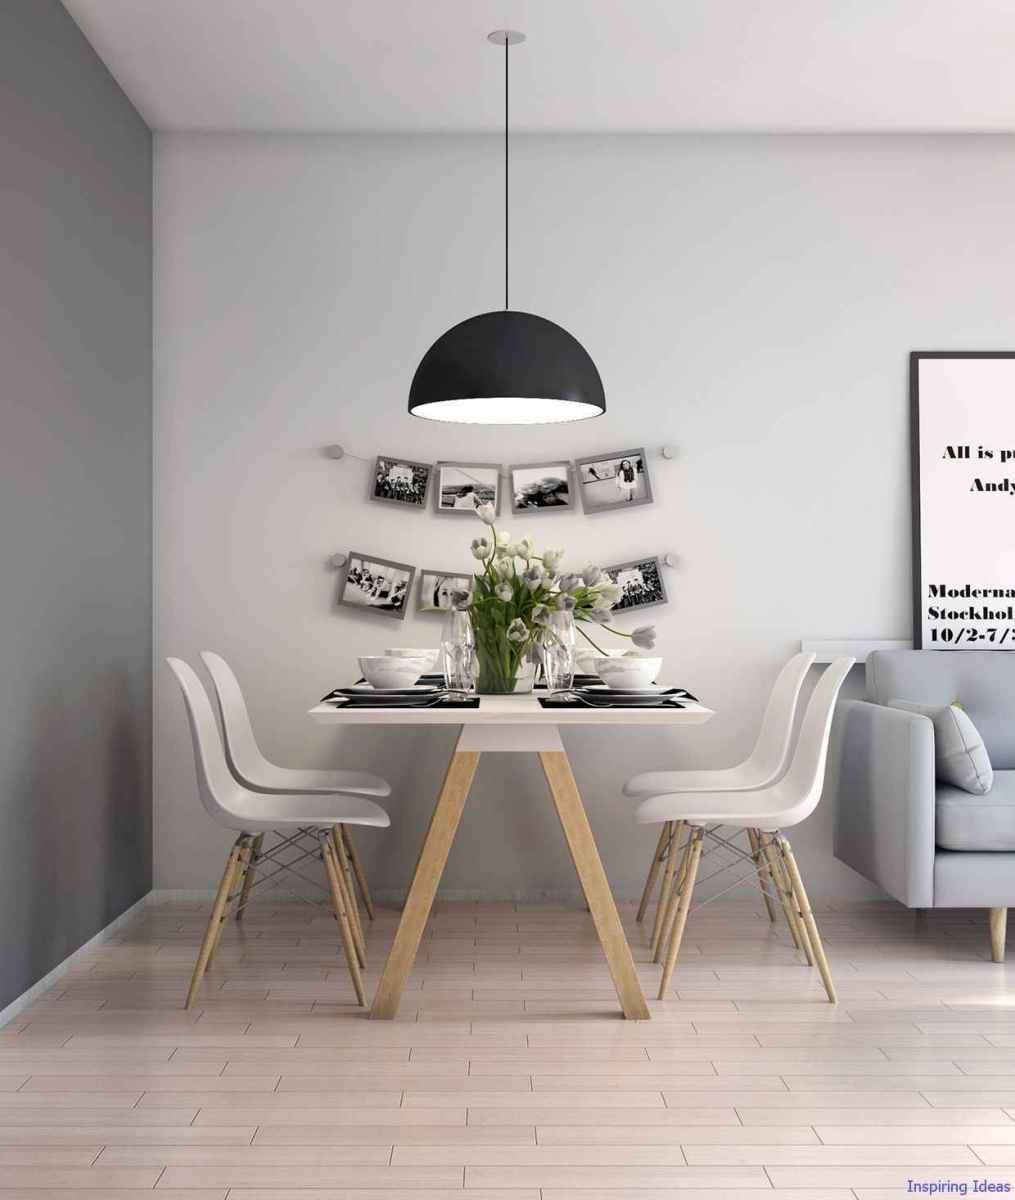 02 cool apartment decorating ideas on a budget for women